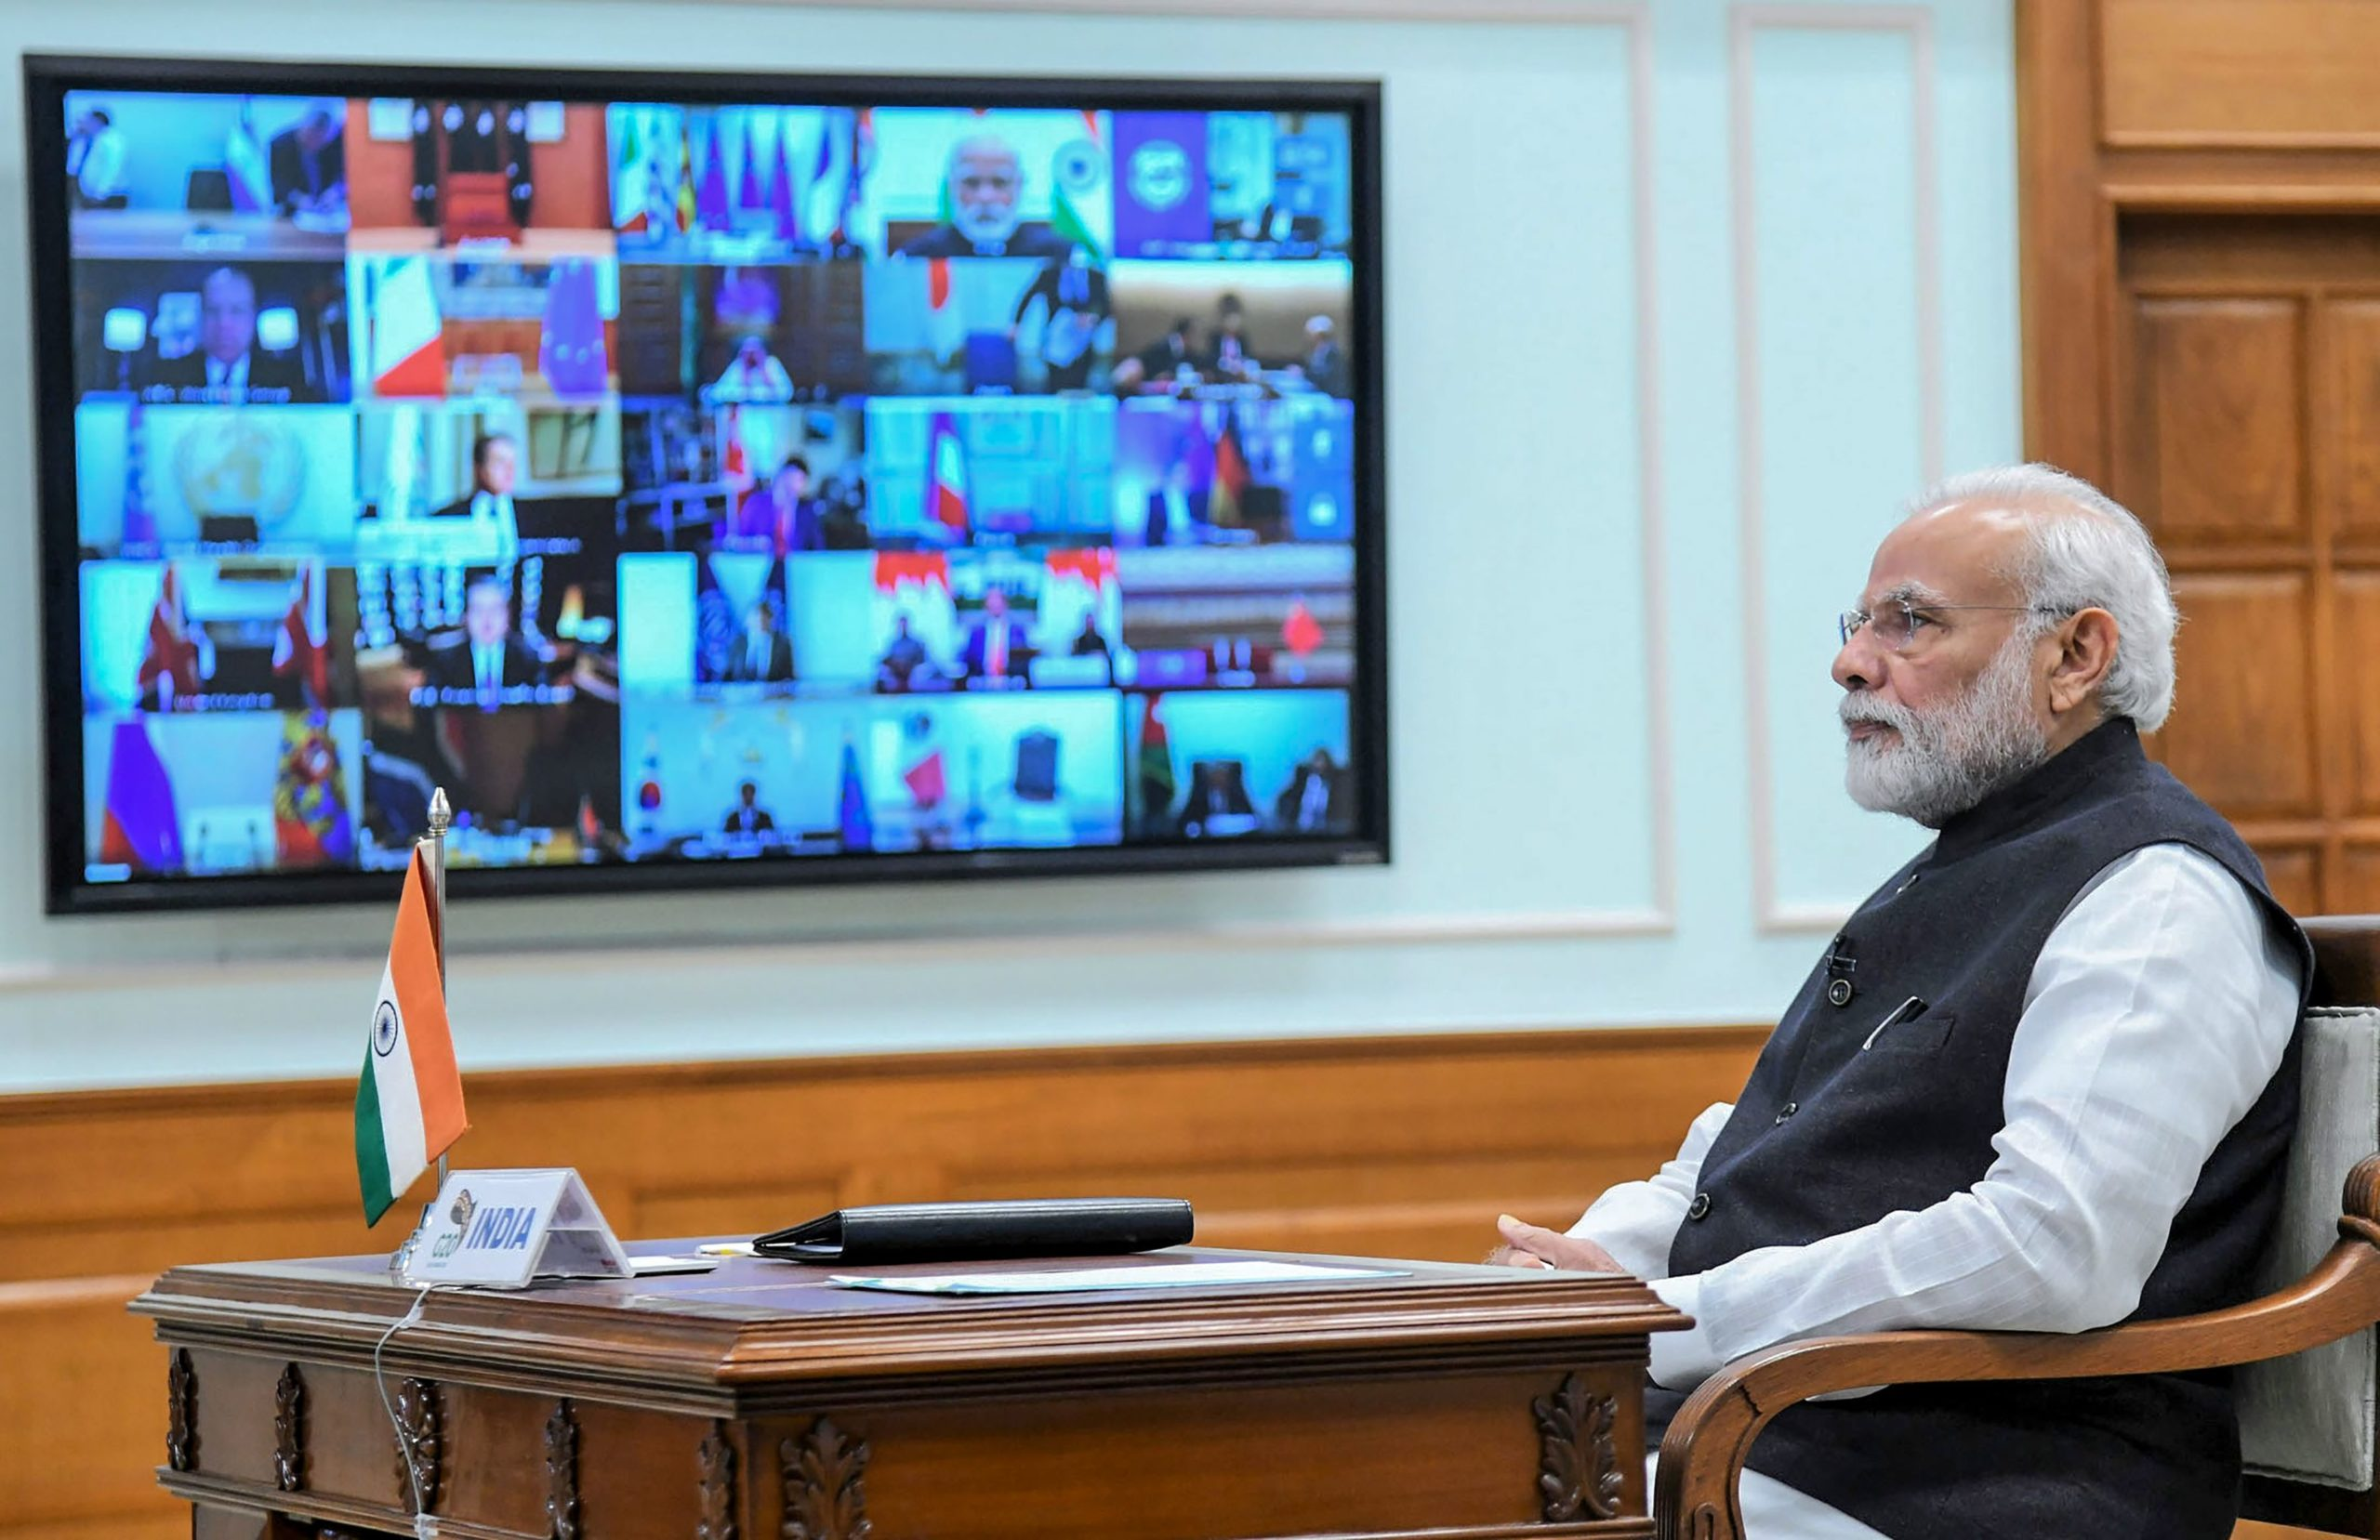 Govt To Set Up Innovation Challenge For Companies To Create A Video Conferencing Solution